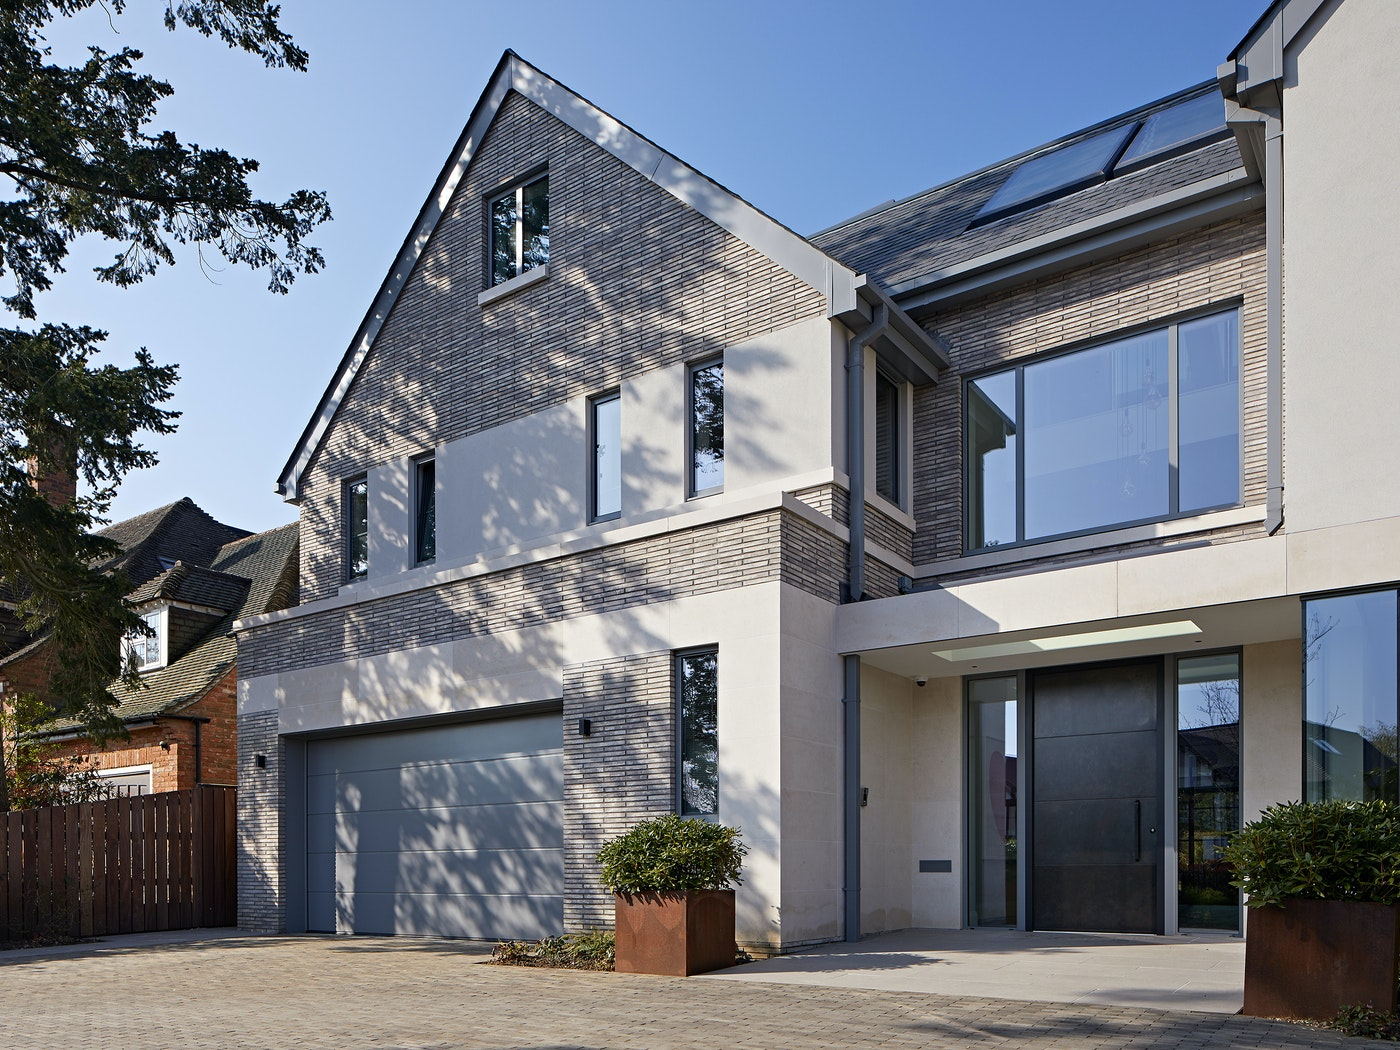 Standing at 3 metres tall, this impressive door is perfectly complementary to the classically contemporary exterior